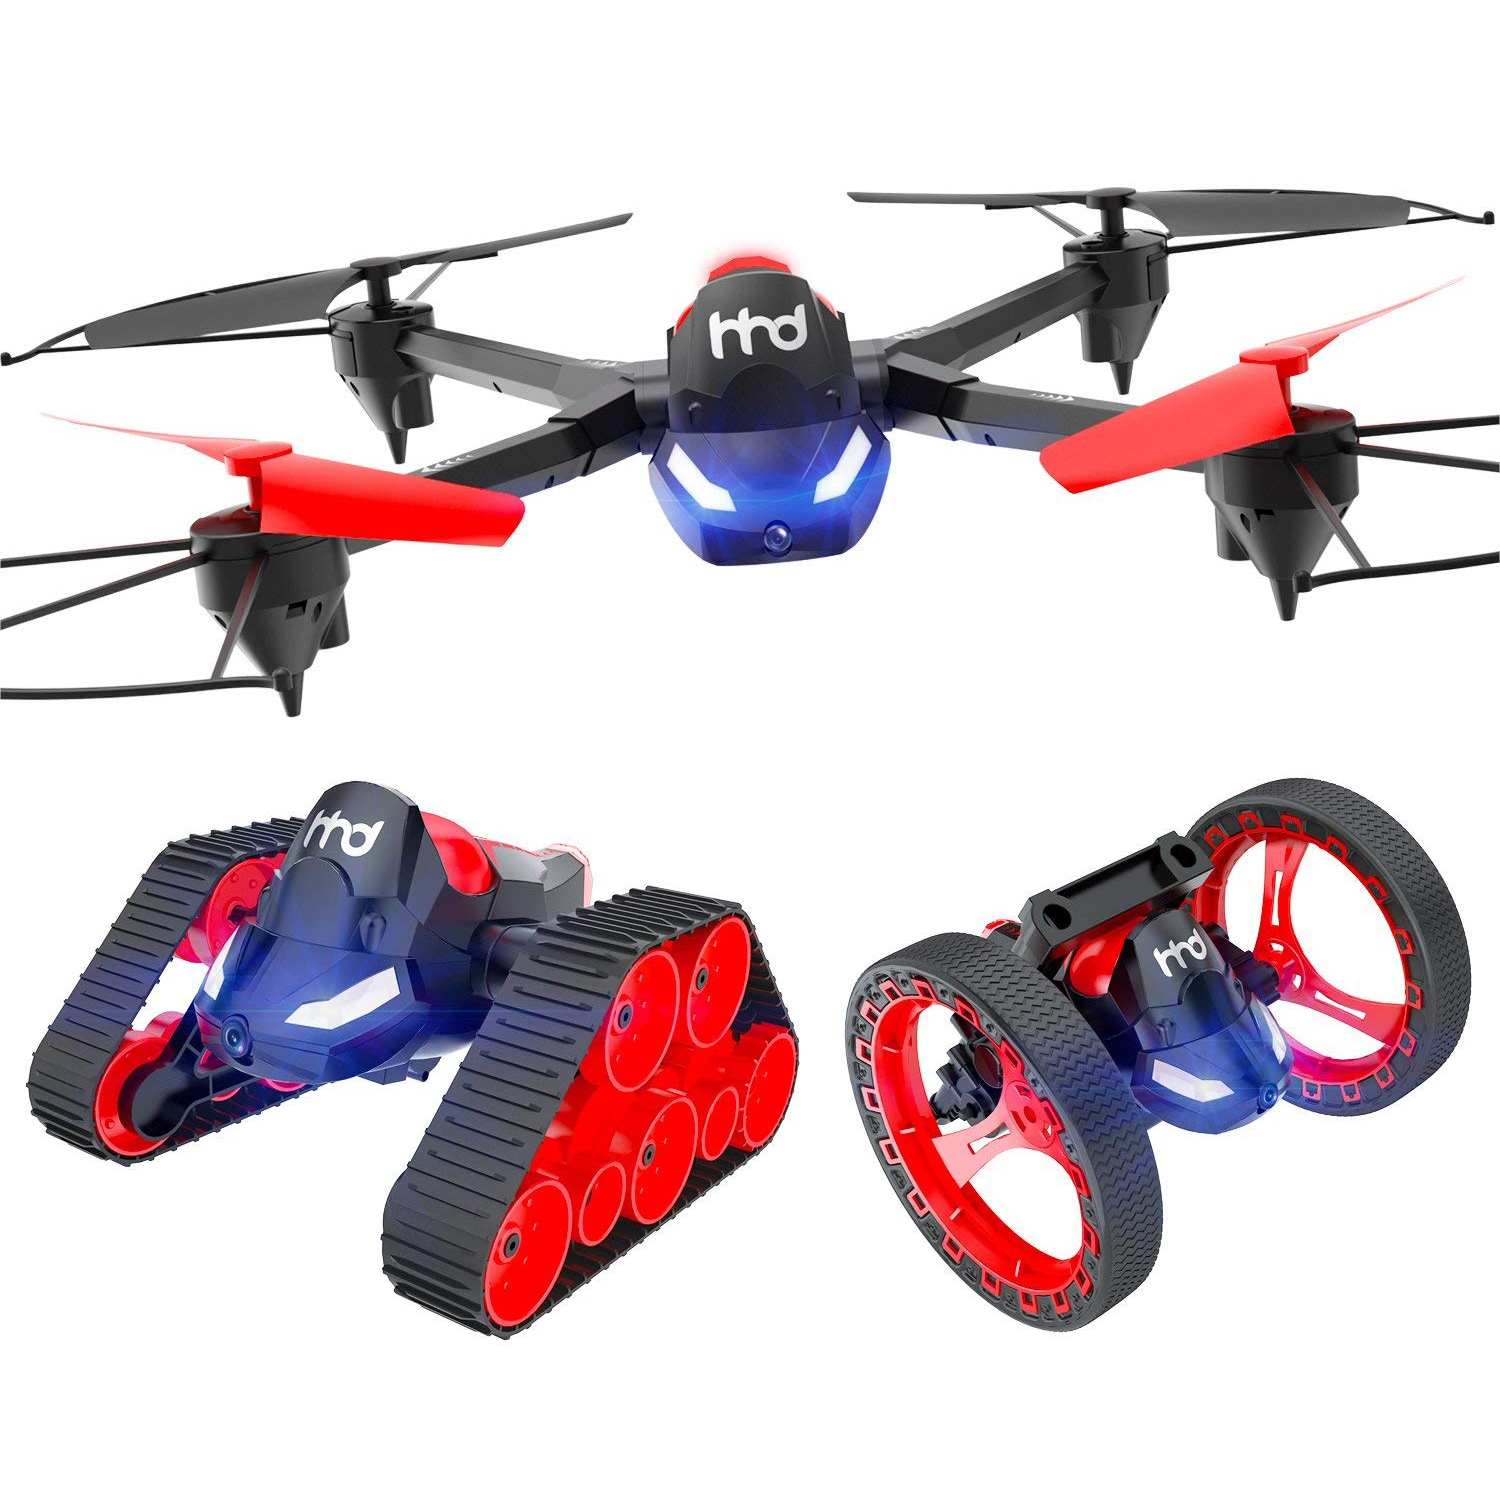 New Three-in-one Mobile Phone WIFI Remote Control Aircraft Tank Bouncing Drone Four-axle Aircraft Model Helicopter Toy,Black 127127 new children s toy aircraft supersize inertia simulation aircraft helicopter boy baby music toy car model